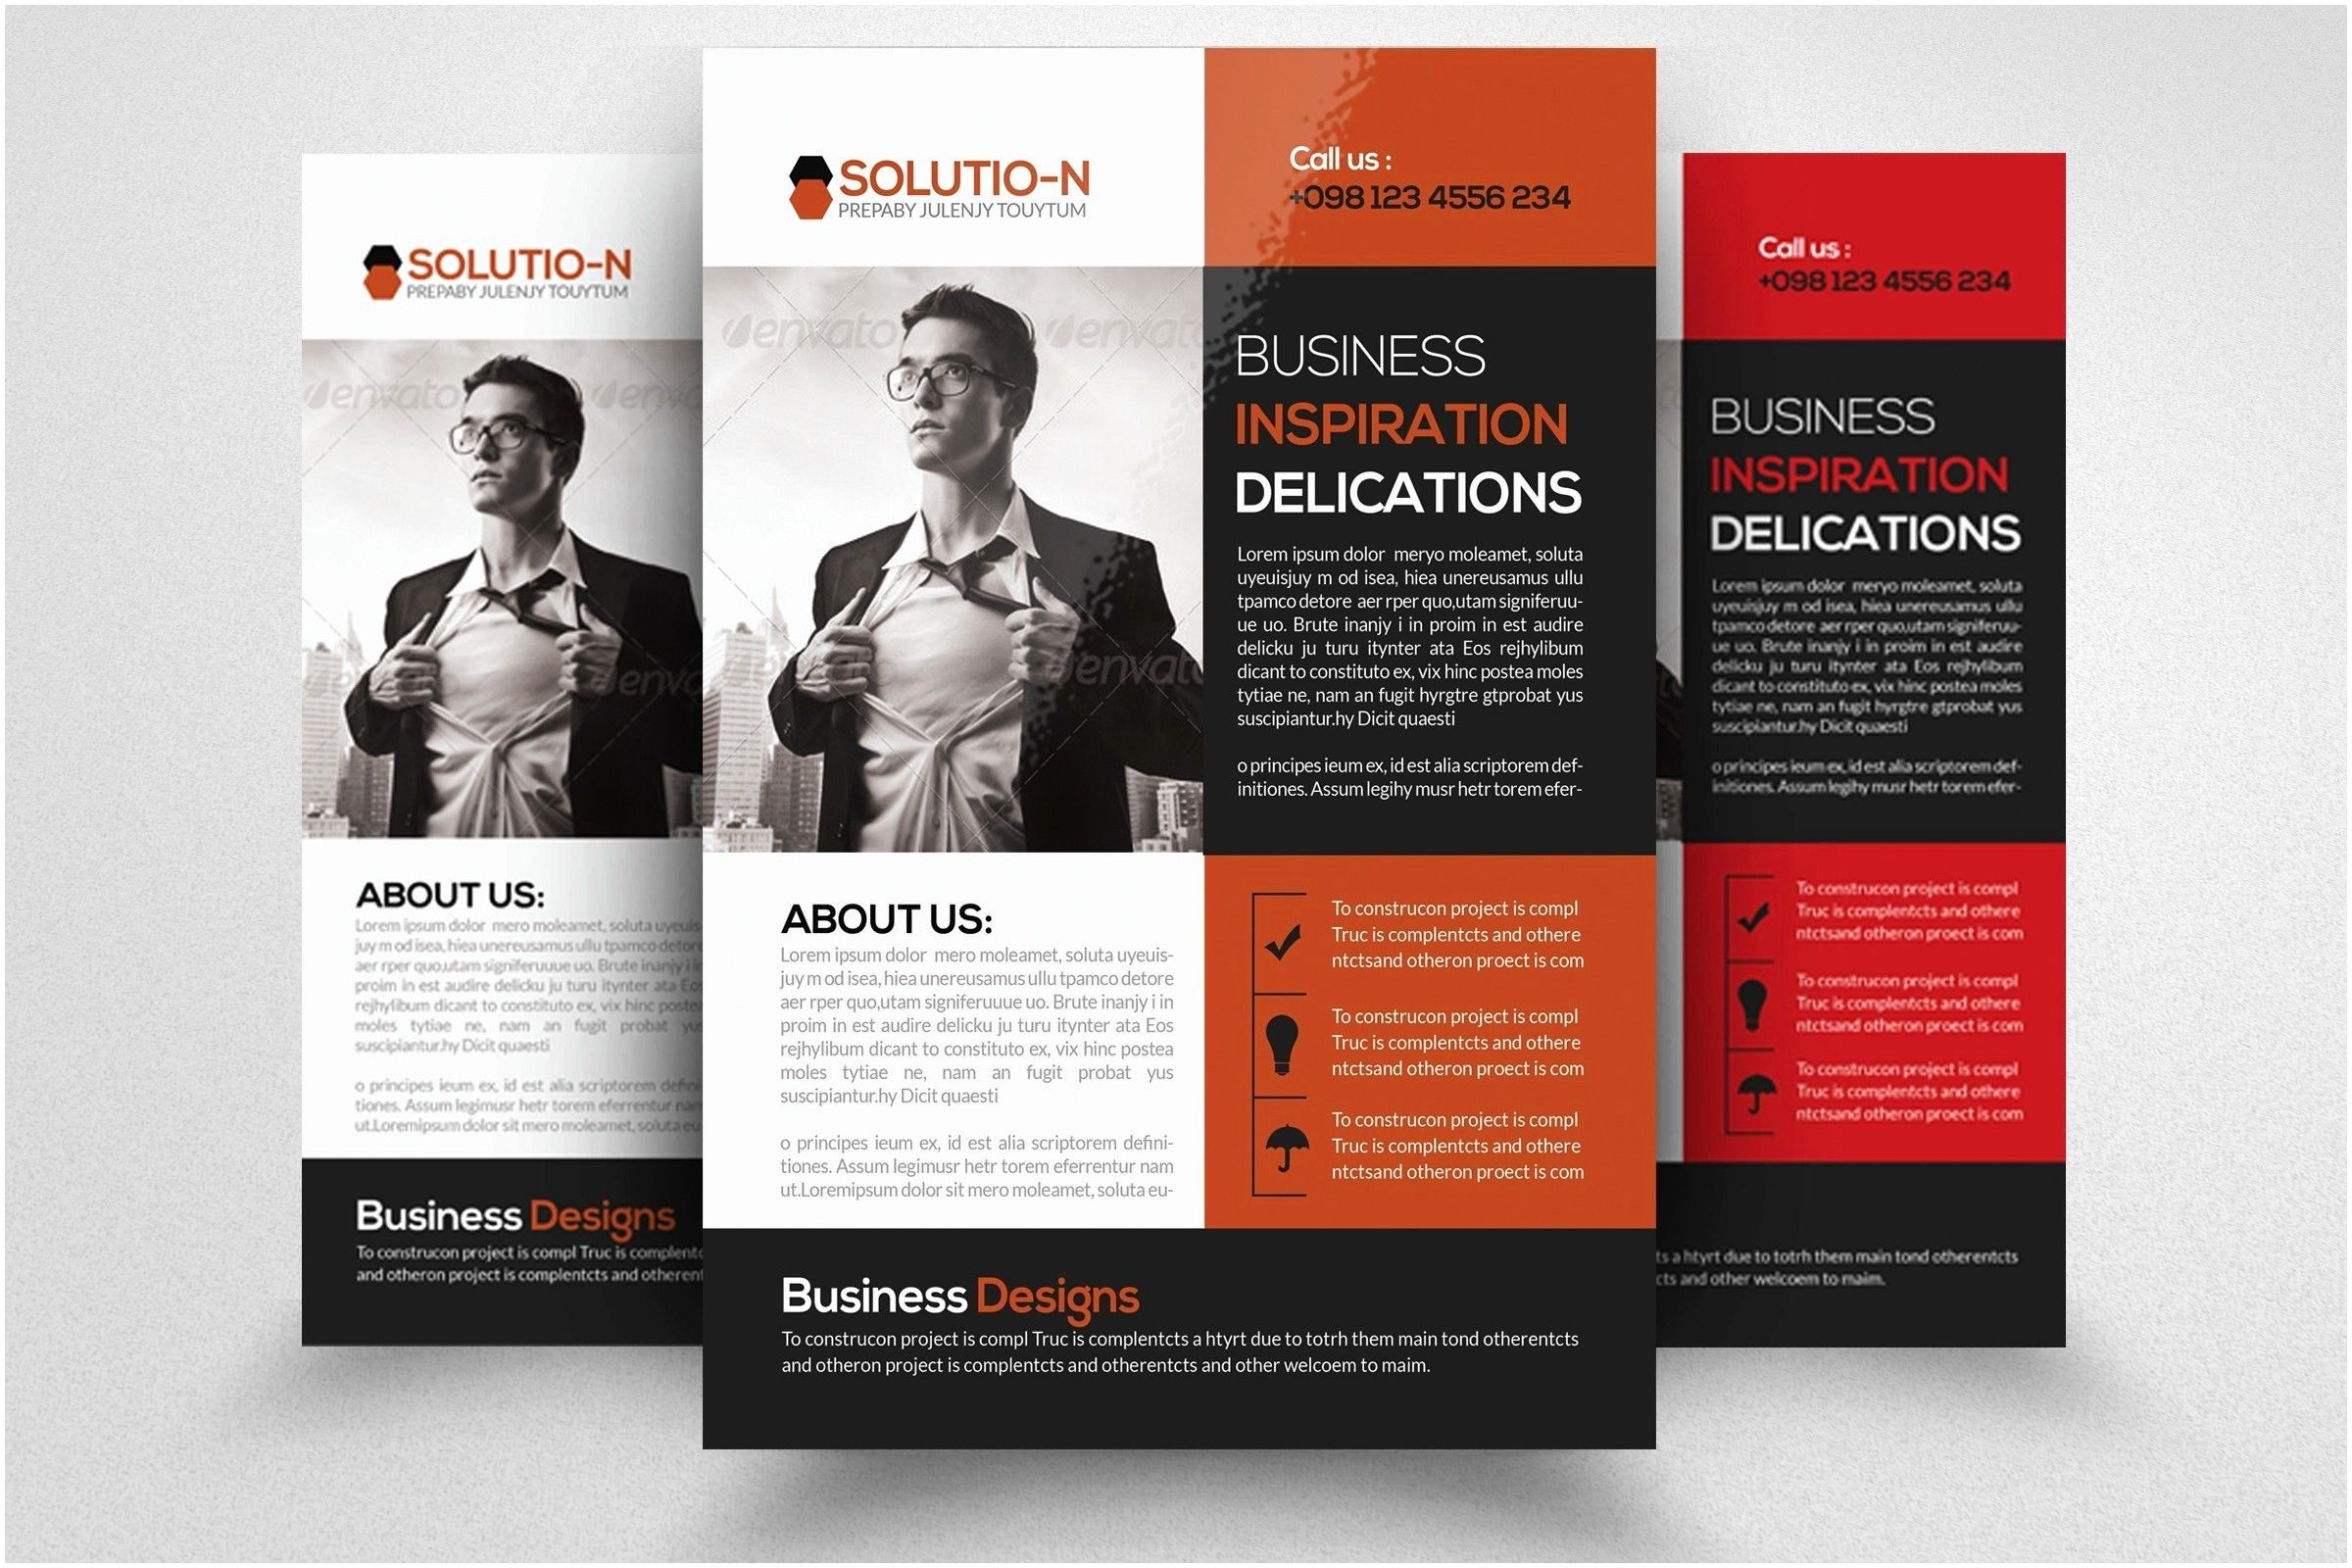 Flyers for events Templates Inspirational Free Business Flyers Templates New Free event Flyer Templates Word